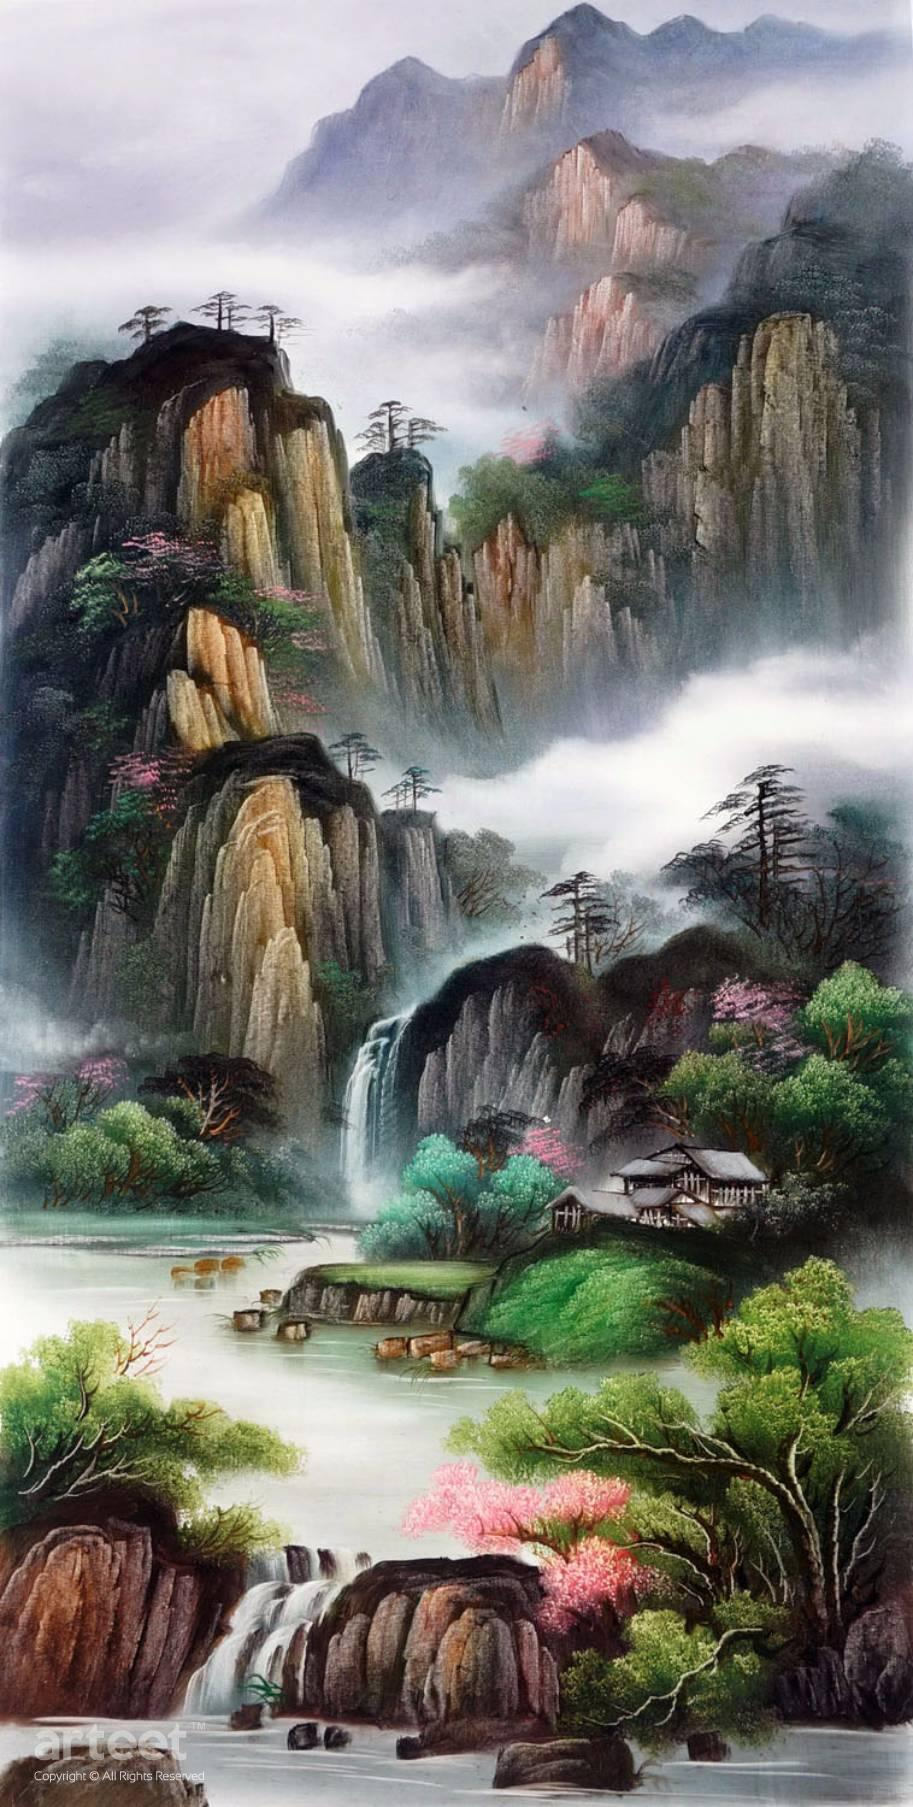 e74787d3c Mountains in Sichuan Surrounded by Mist   Art Paintings for Sale ...